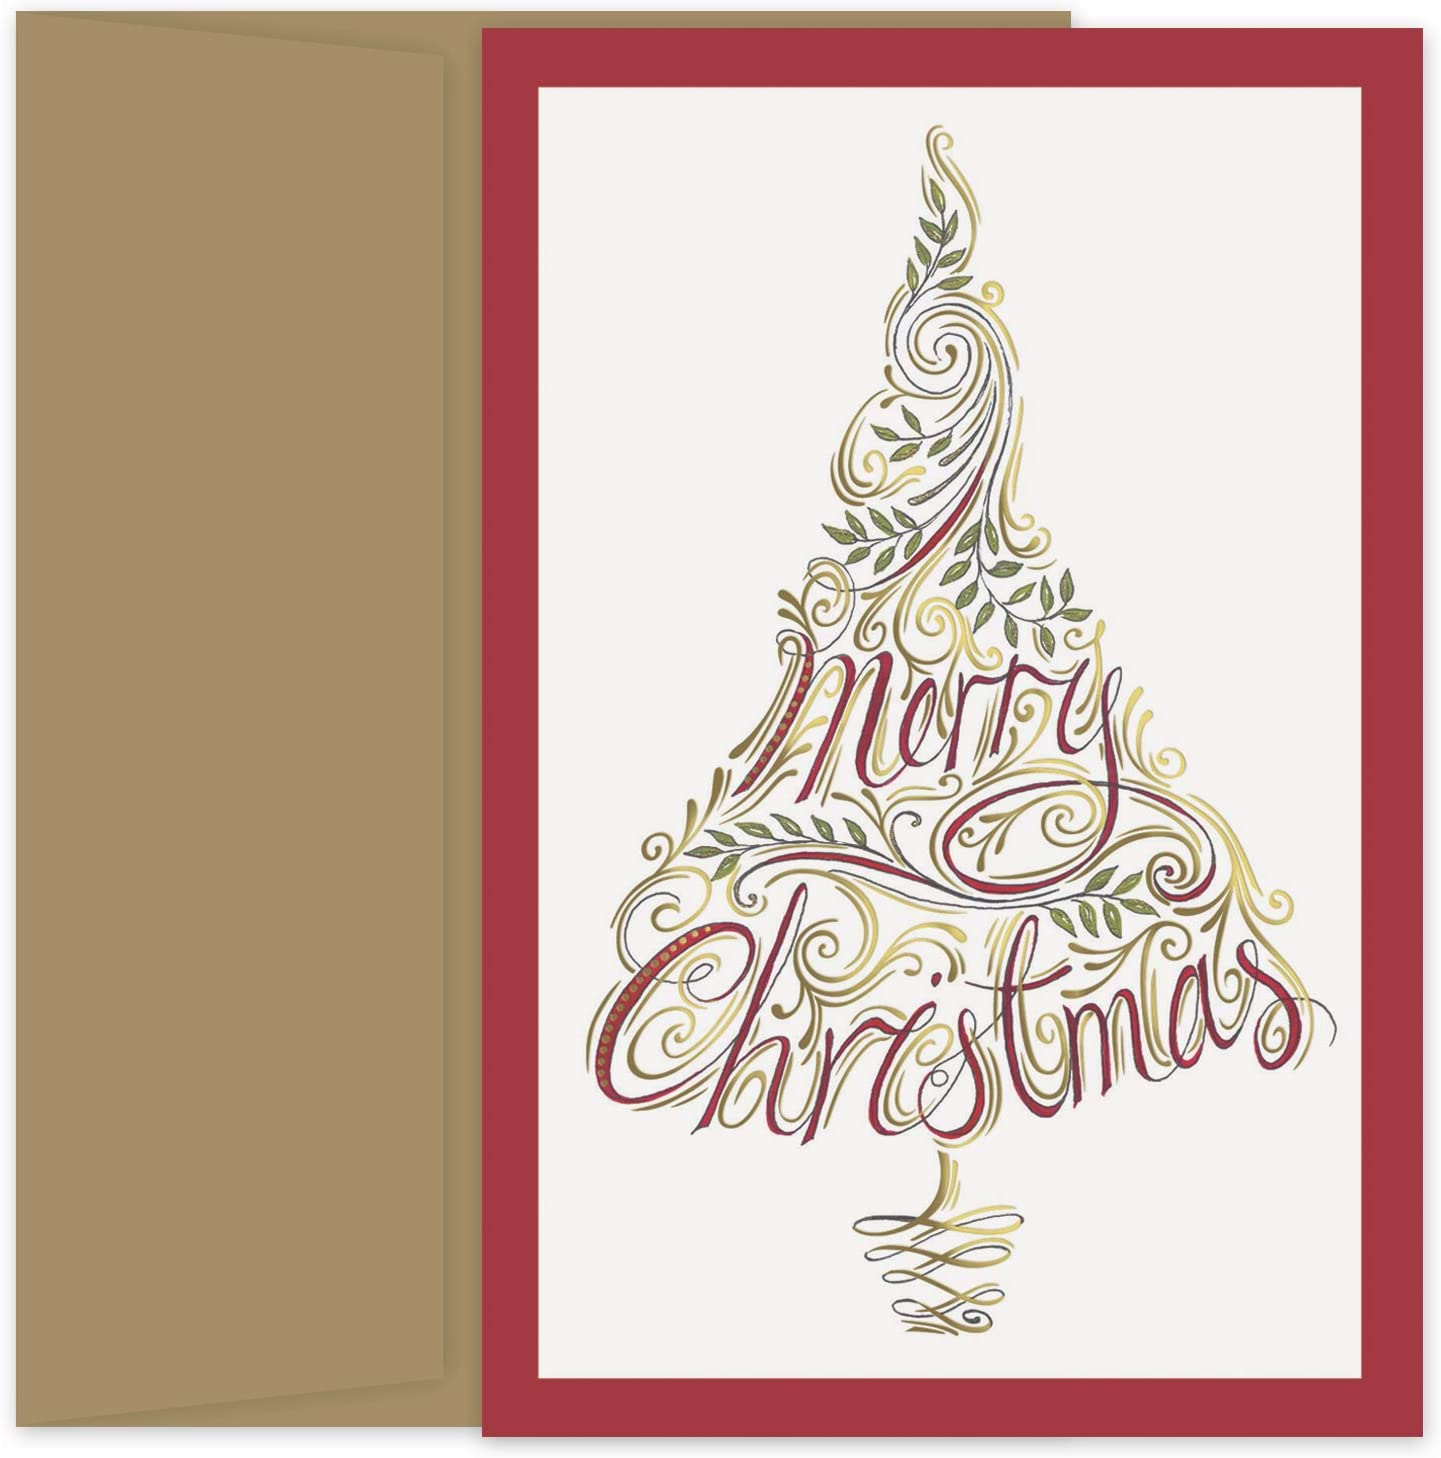 72 Pack Masterpiece Studios Beach Wreath Holiday Cards with Envelopes